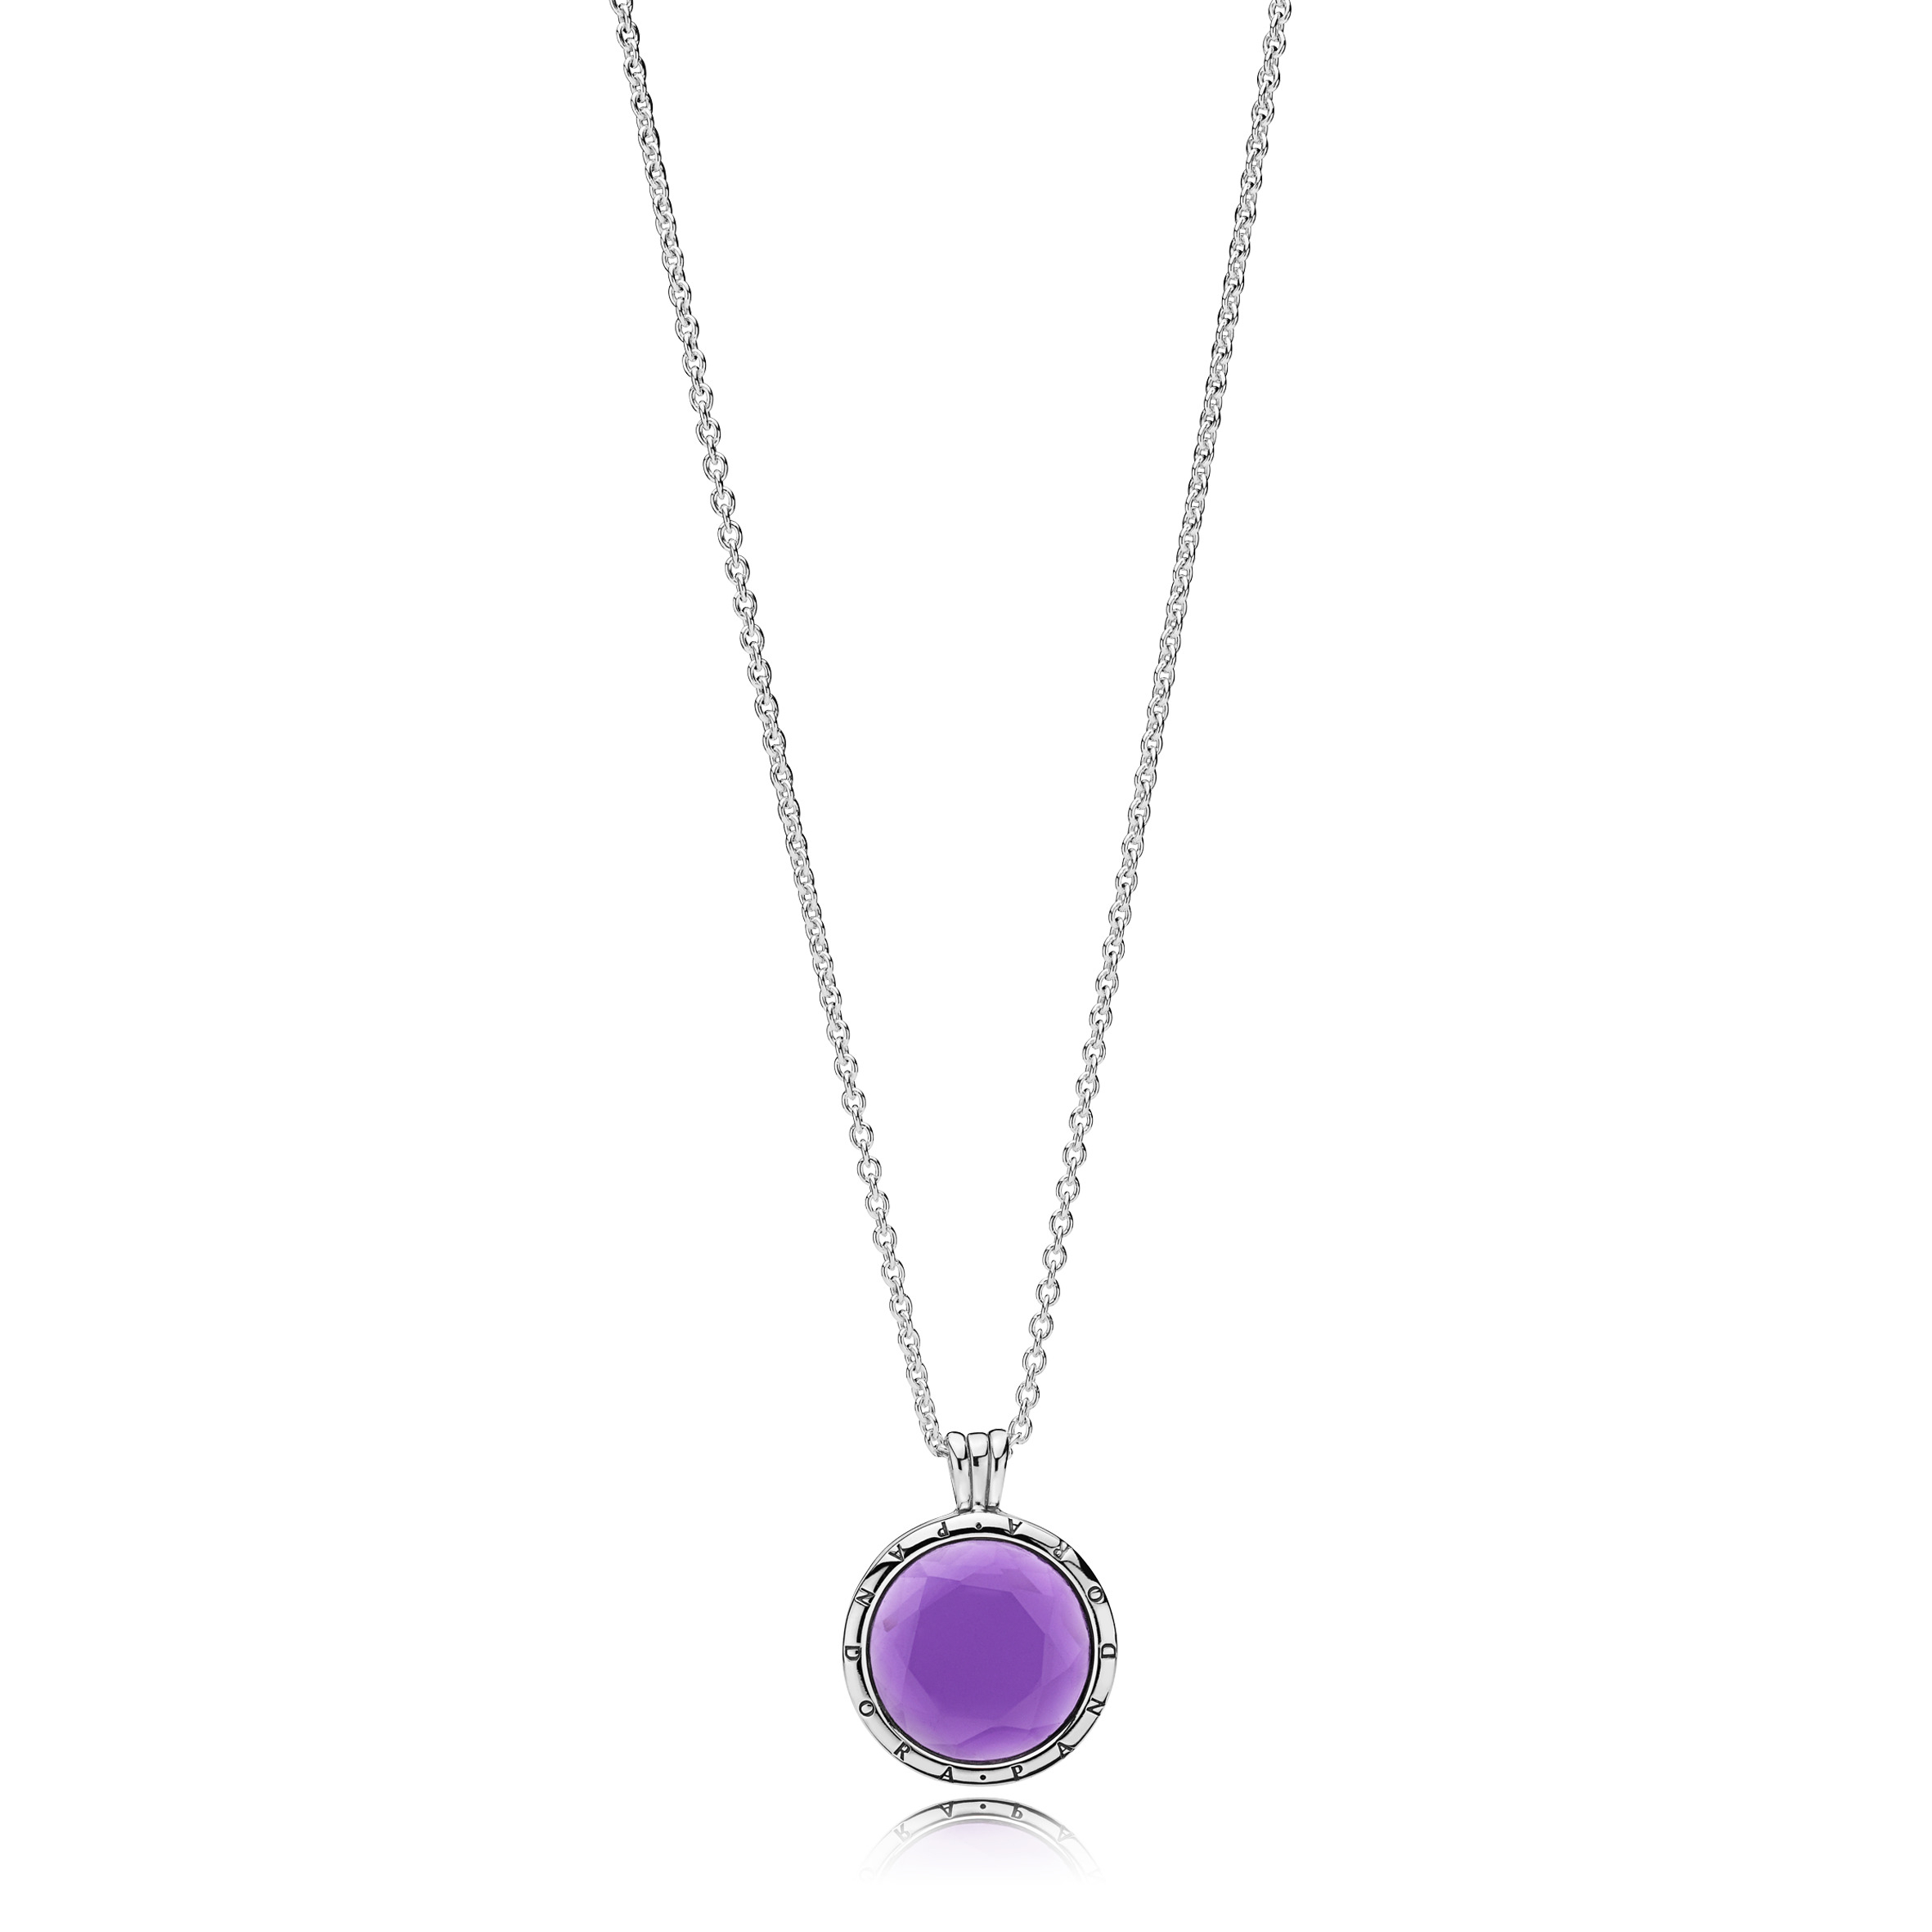 Pandora Faceted Floating Locket Necklace Within Most Up To Date Pandora Lockets Logo Necklaces (Gallery 16 of 25)